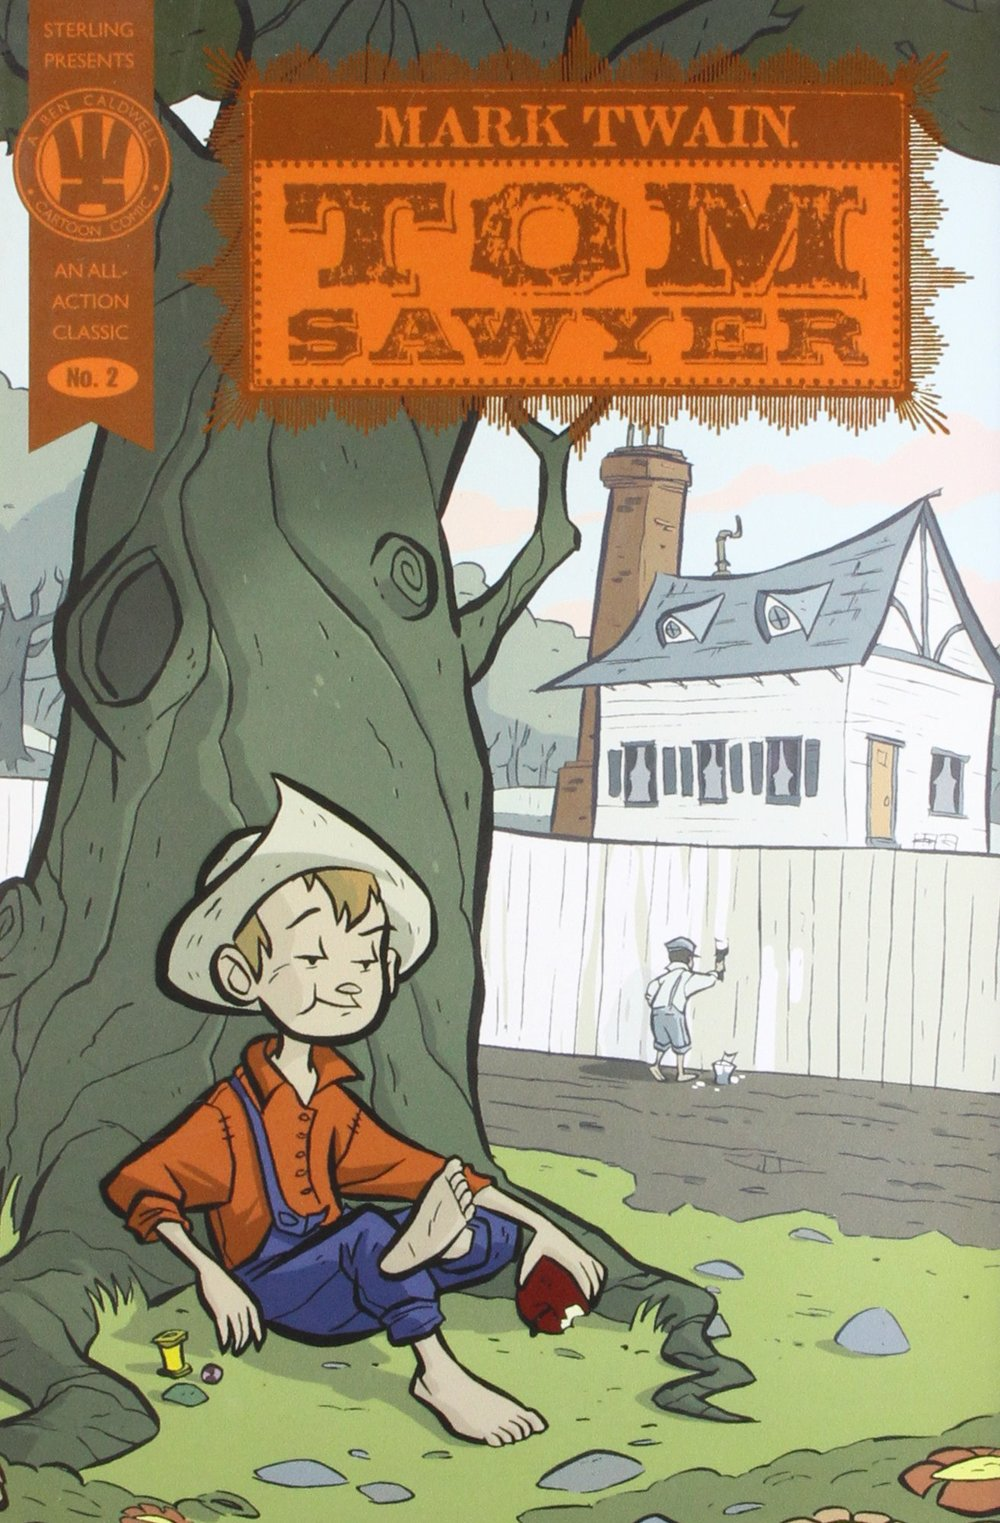 With its lively, fun narrative and irrepressible hero,  Tom Sawyer  is tailor-made for the graphic novel form. Just imagine such classic moments as Tom and Becky in the bat-filled cave or the hilarious fence-painting incident captured in bright and atmospheric images. Author Tim Mucci and artist Rad Sechrist, one of the most talented up-and-coming comics illustrators today, have endowed each character with personality and each scene with movement and energy. Every frame is filled with such detail—from the buildings to the carefully created backgrounds—that readers will feel as if they could step right into Twain's wonderful world.   Buy it through Amazon!